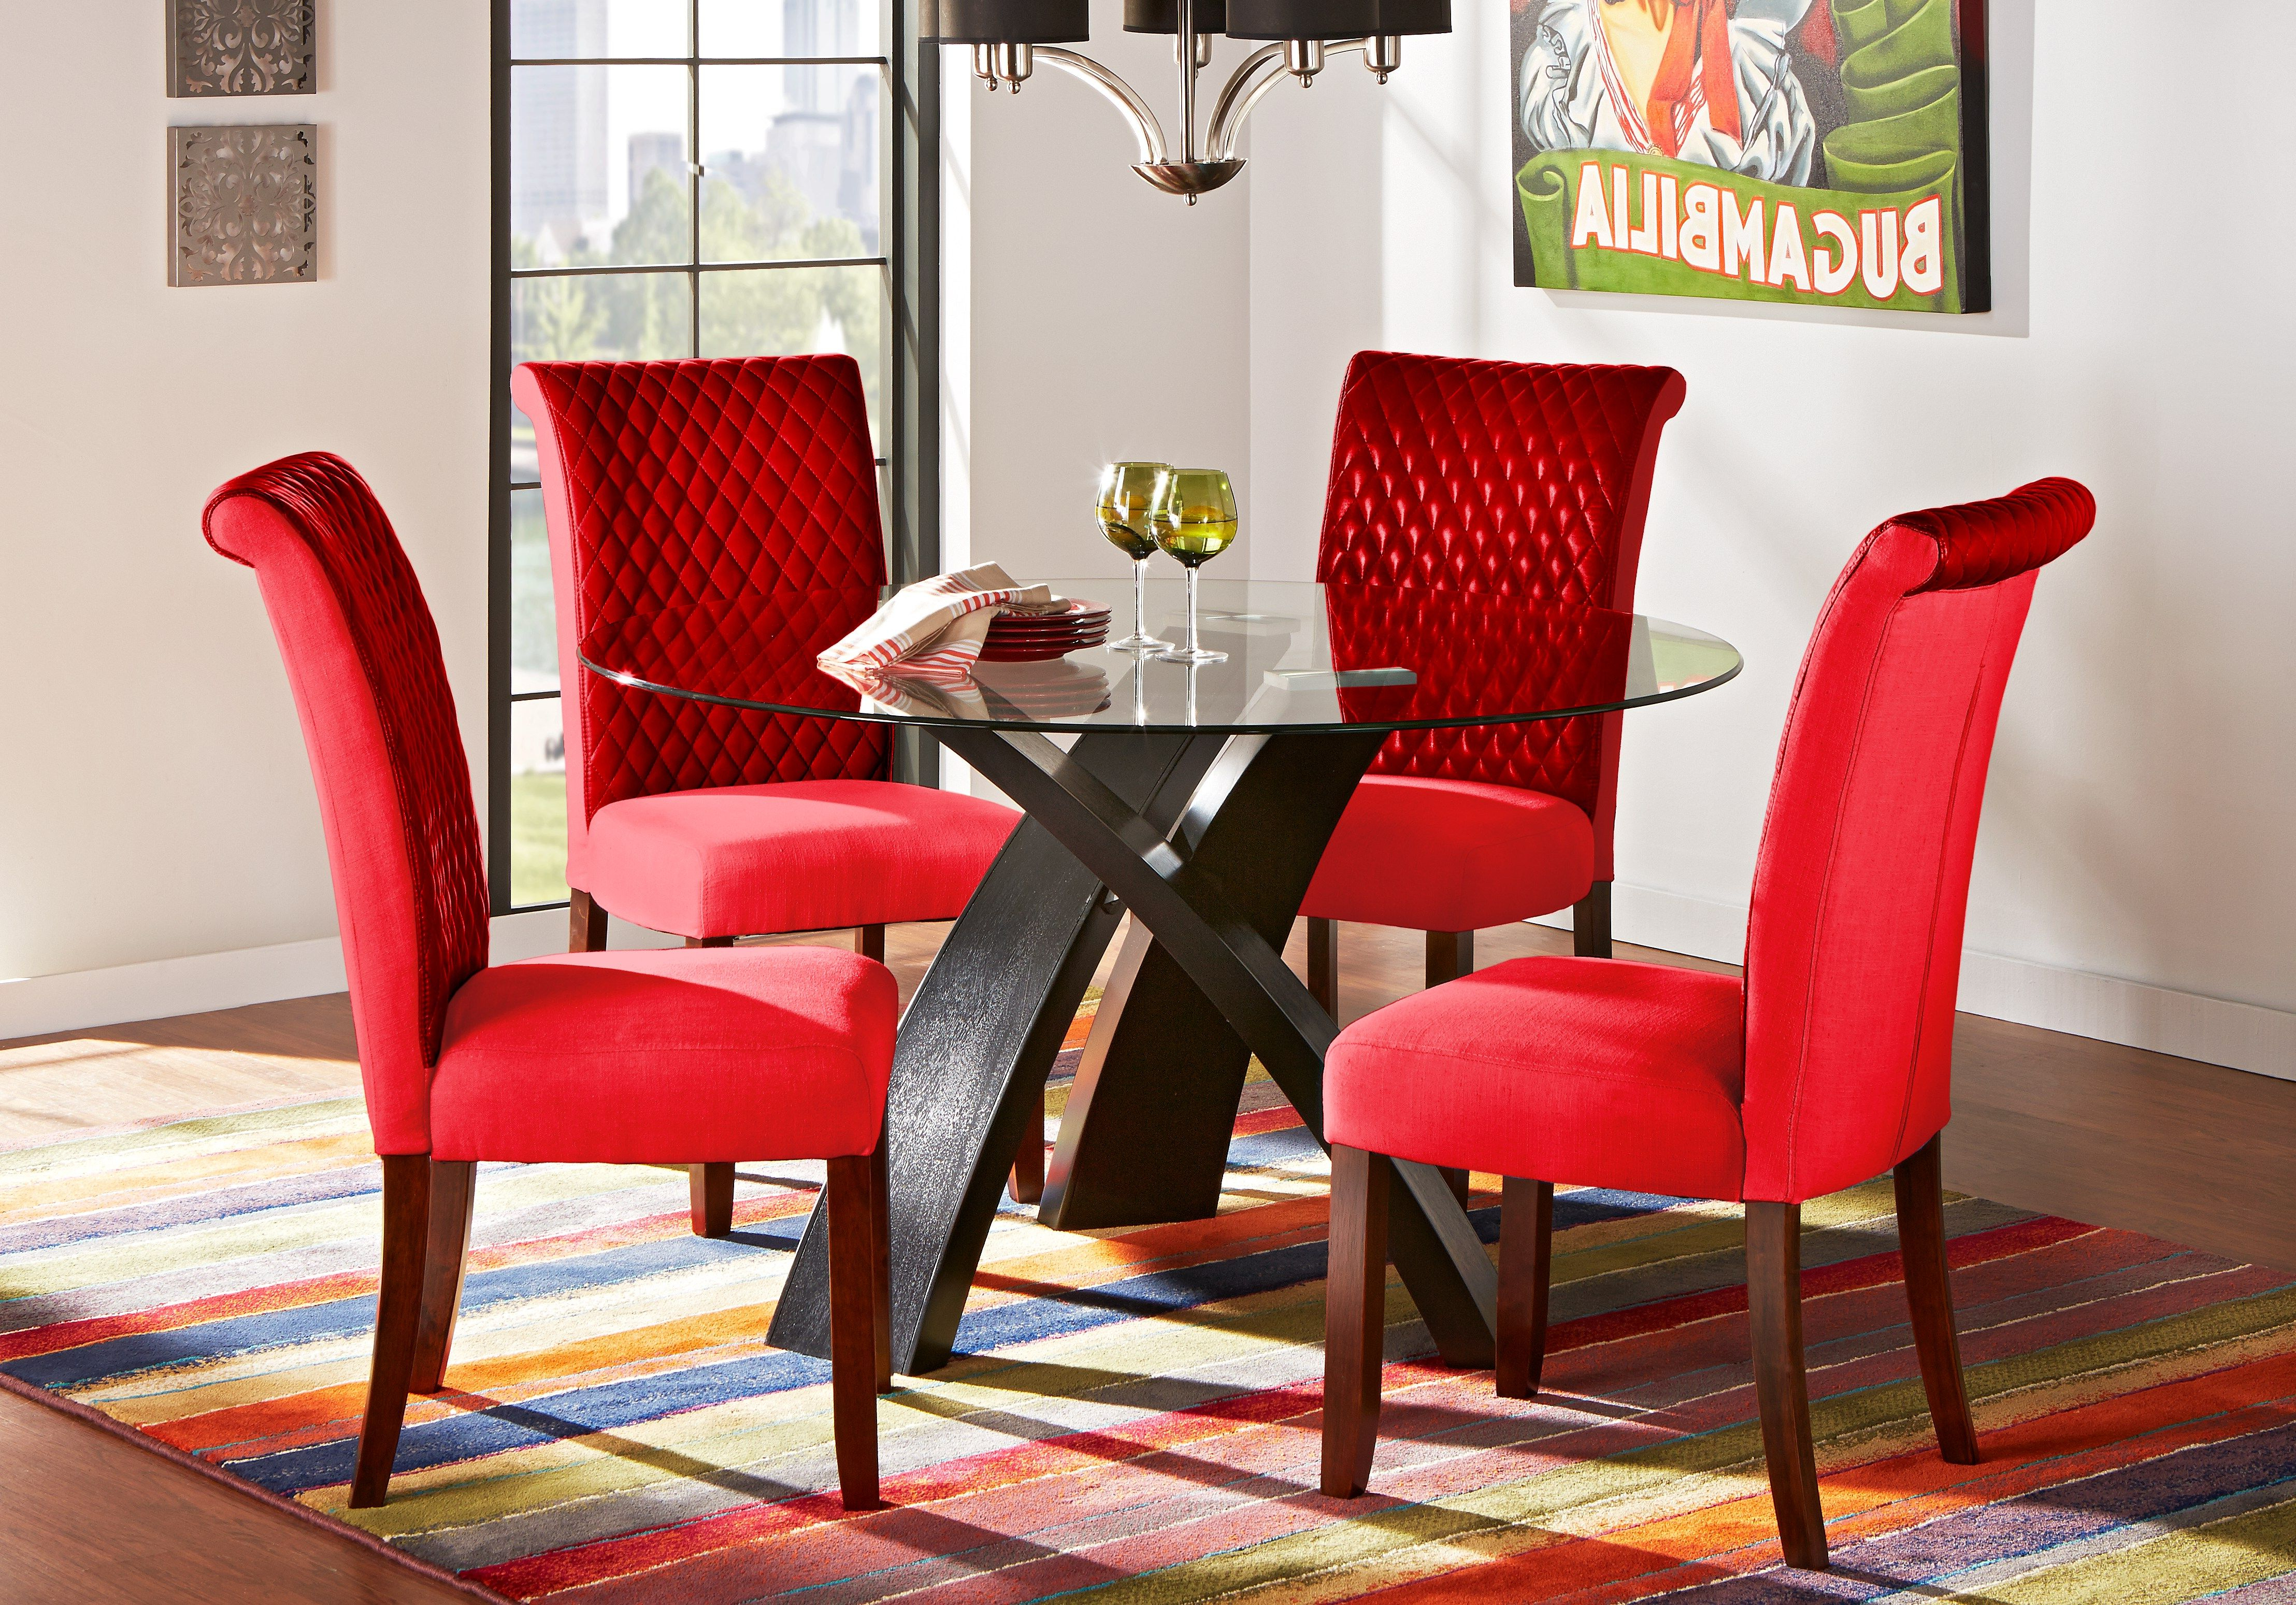 Widely Used Del Mar Ebony 5 Pc Round Dining Set With Red Chairs In 2019 With Delmar 5 Piece Dining Sets (View 6 of 25)